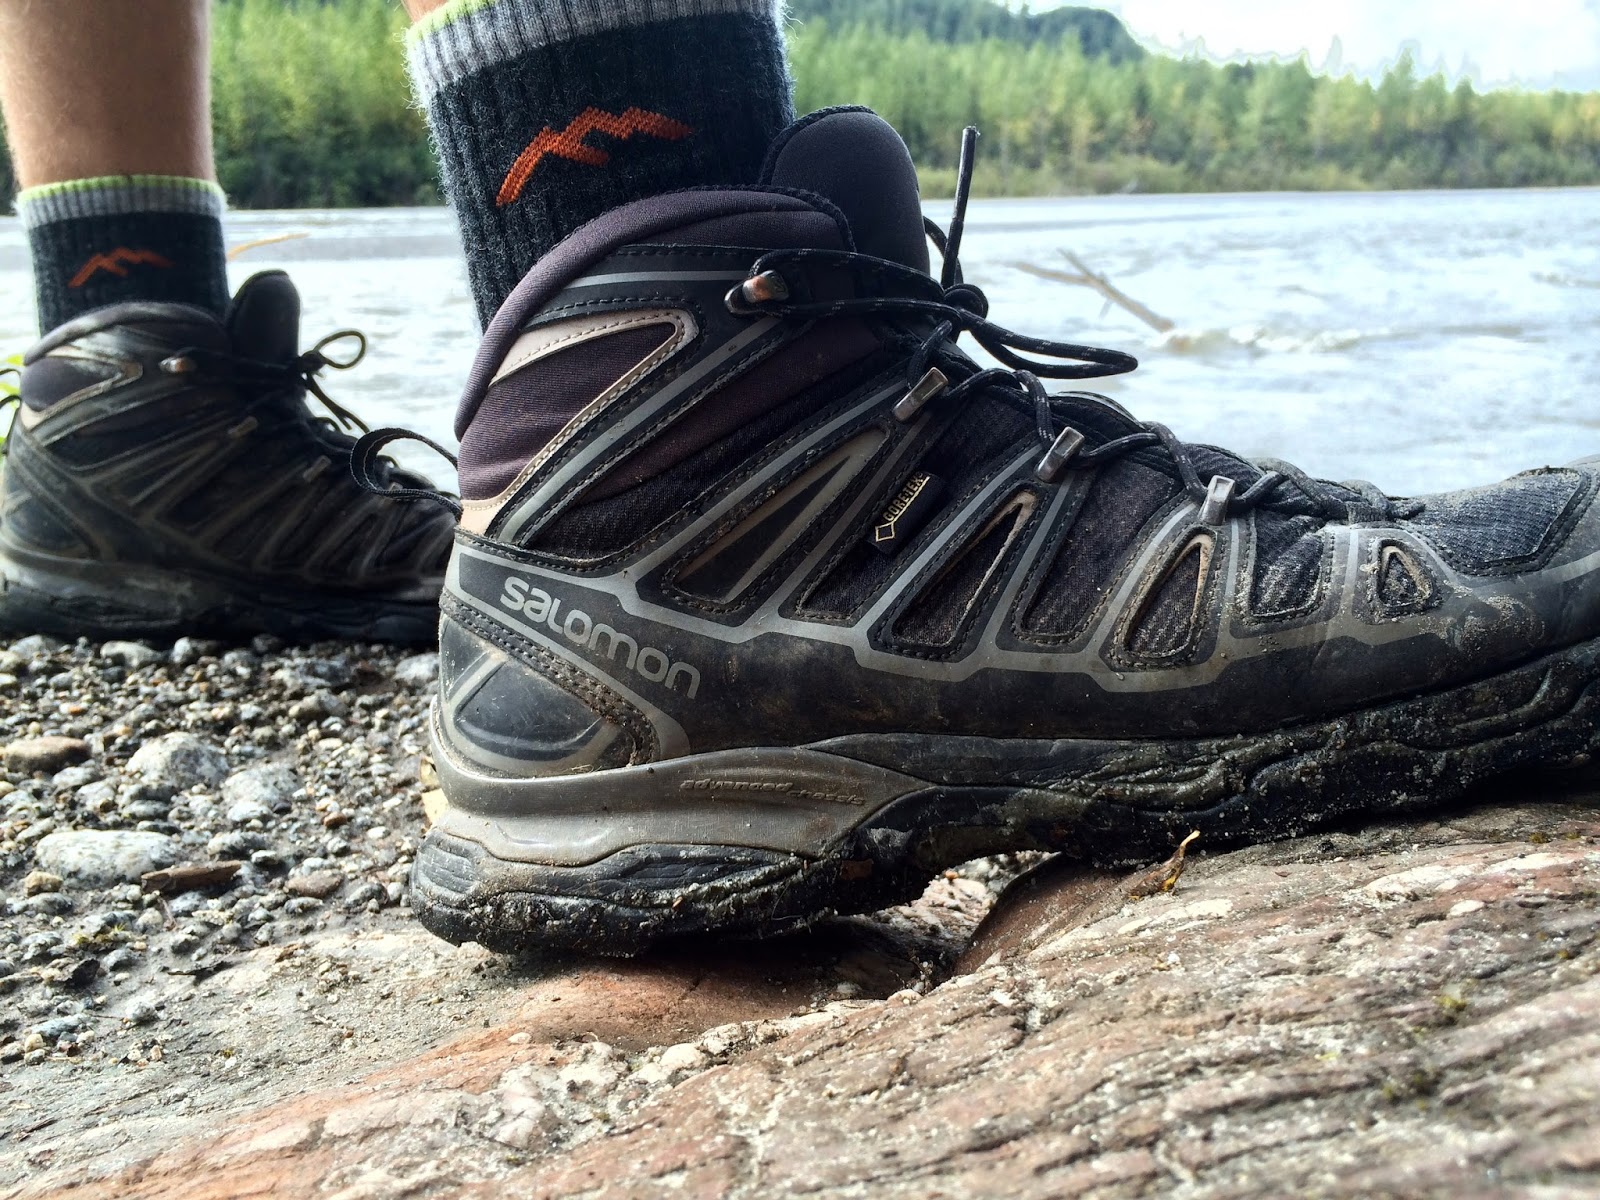 Chris S Gear Review Salomon X Ultra Mid Ii Gtx Hiking Boots